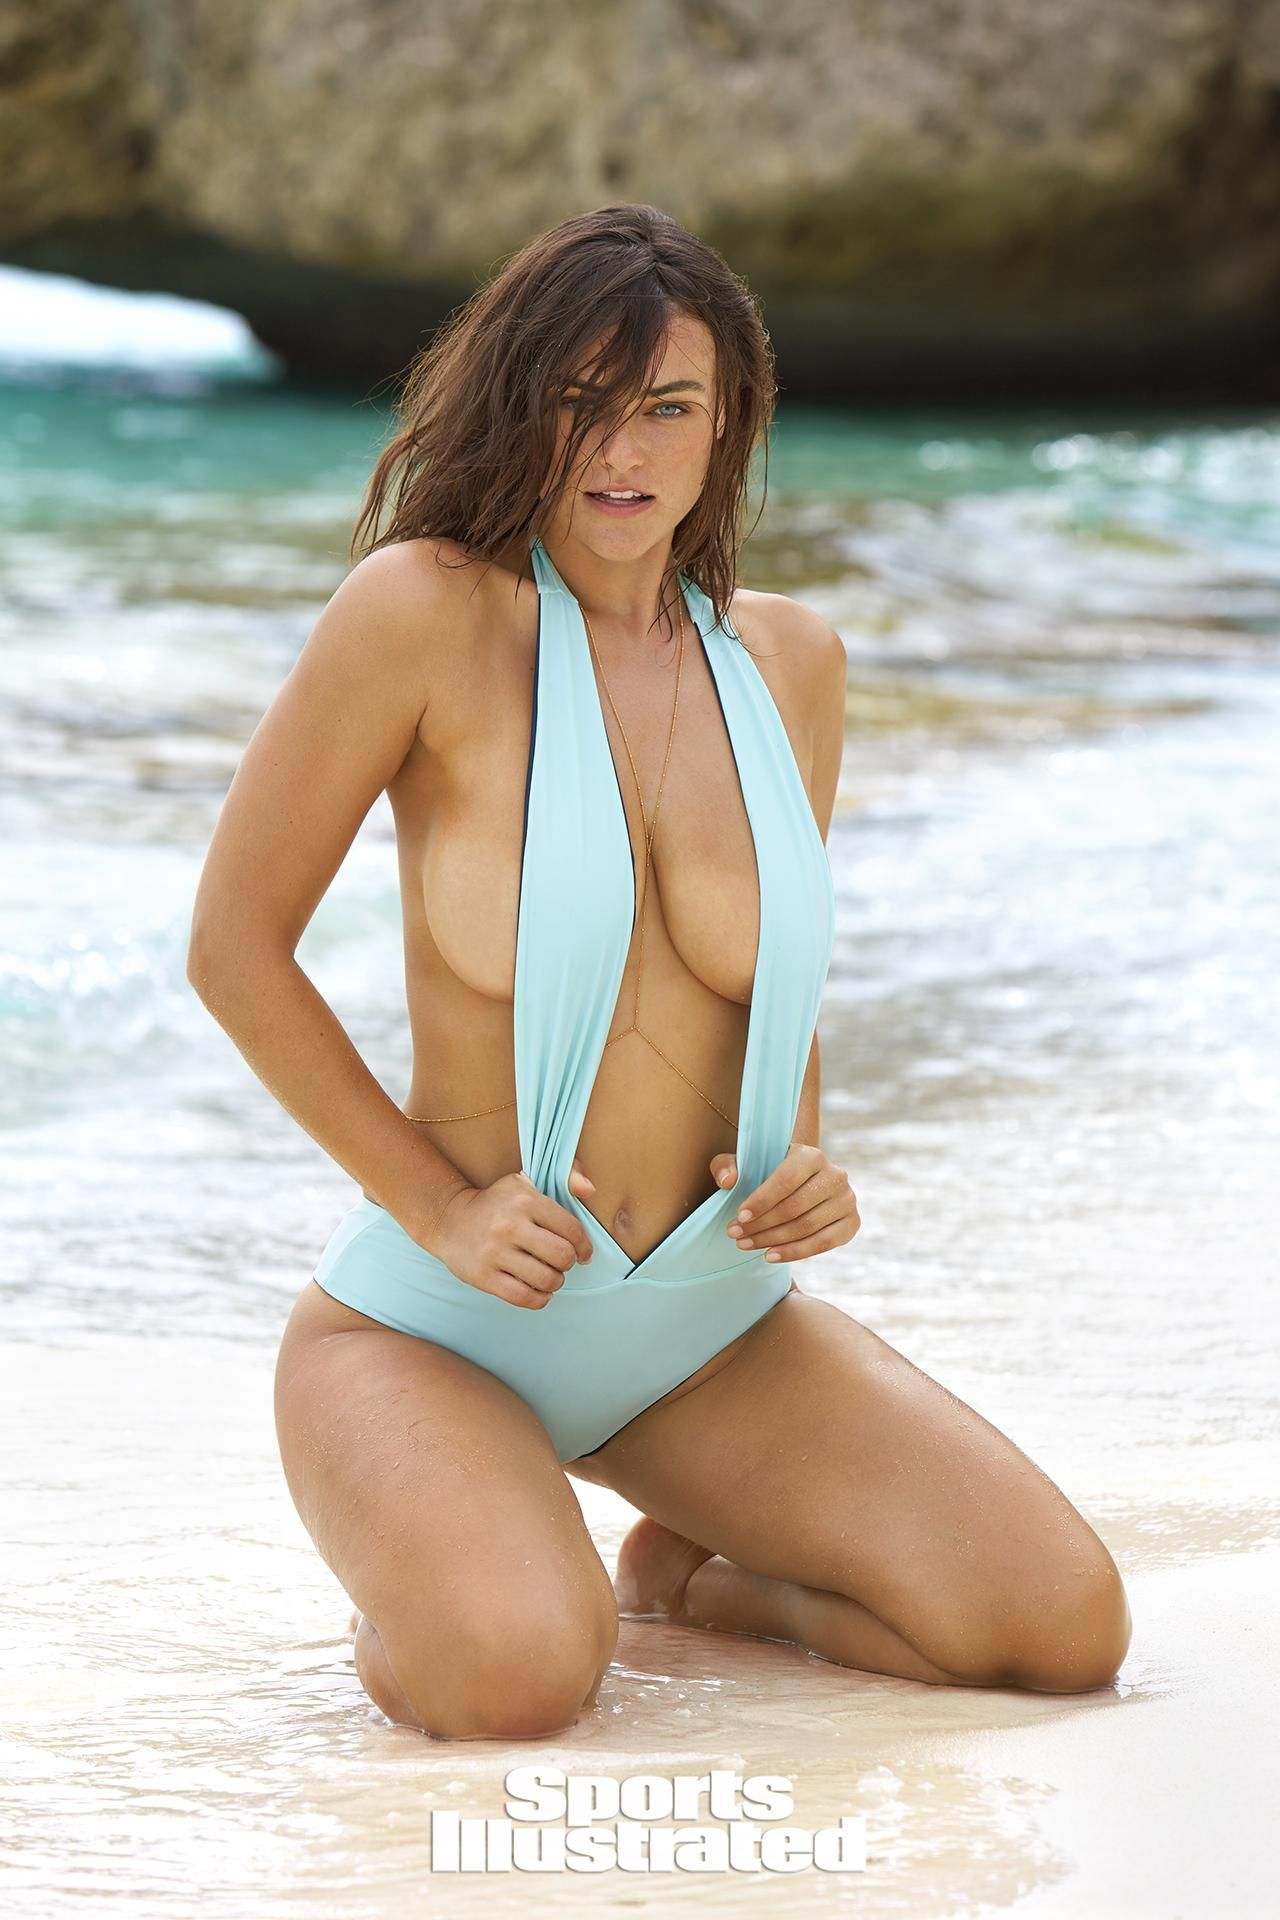 Cleavage Myla Dalbesio nudes (44 photos), Pussy, Cleavage, Instagram, braless 2006